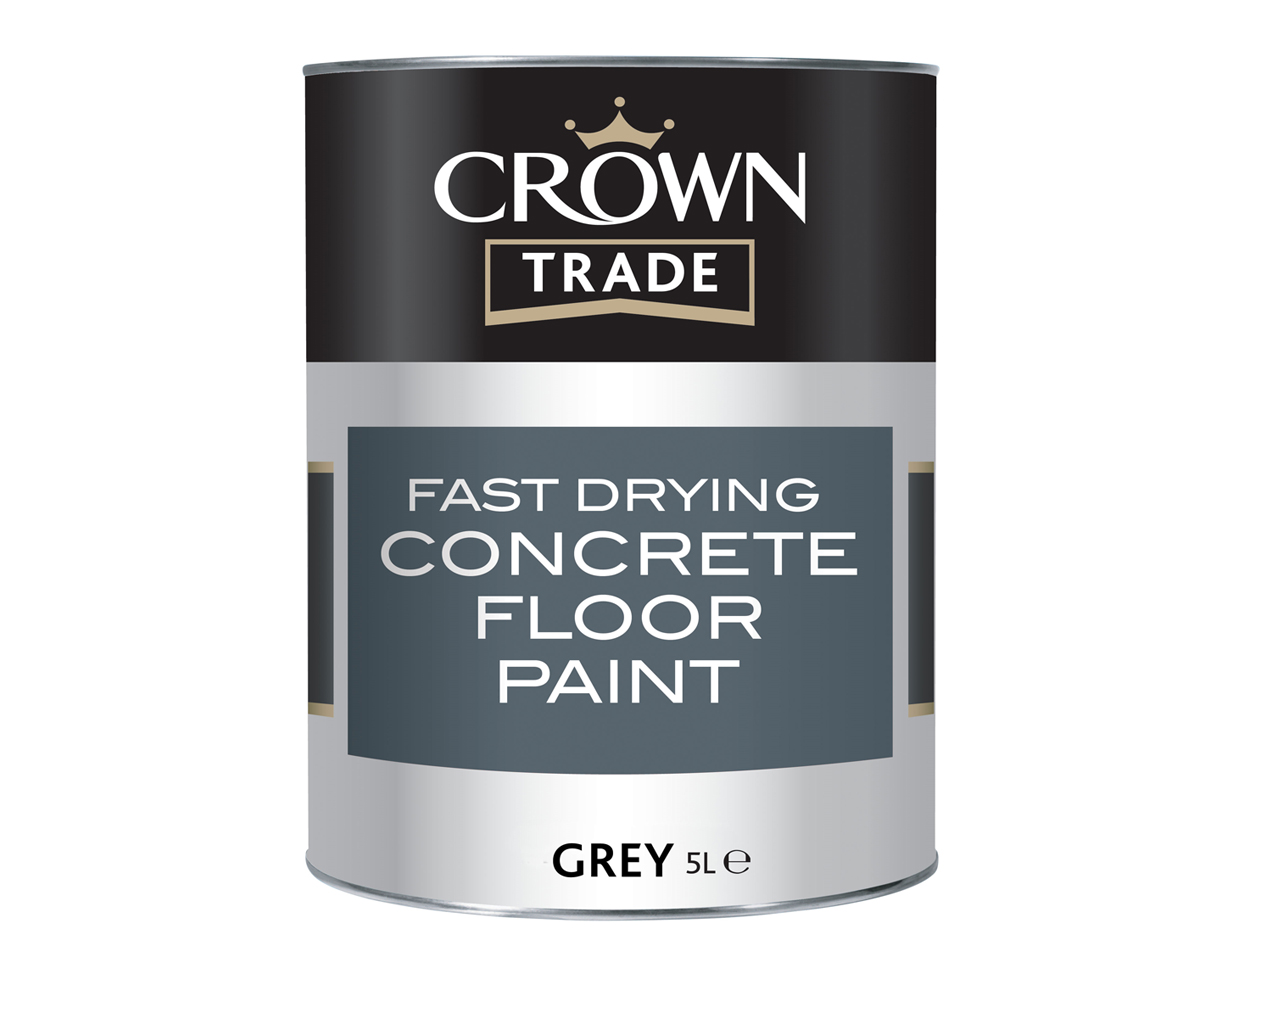 crown exterior masonry paint colours crown trade fast drying concrete floor paint mid green 5l